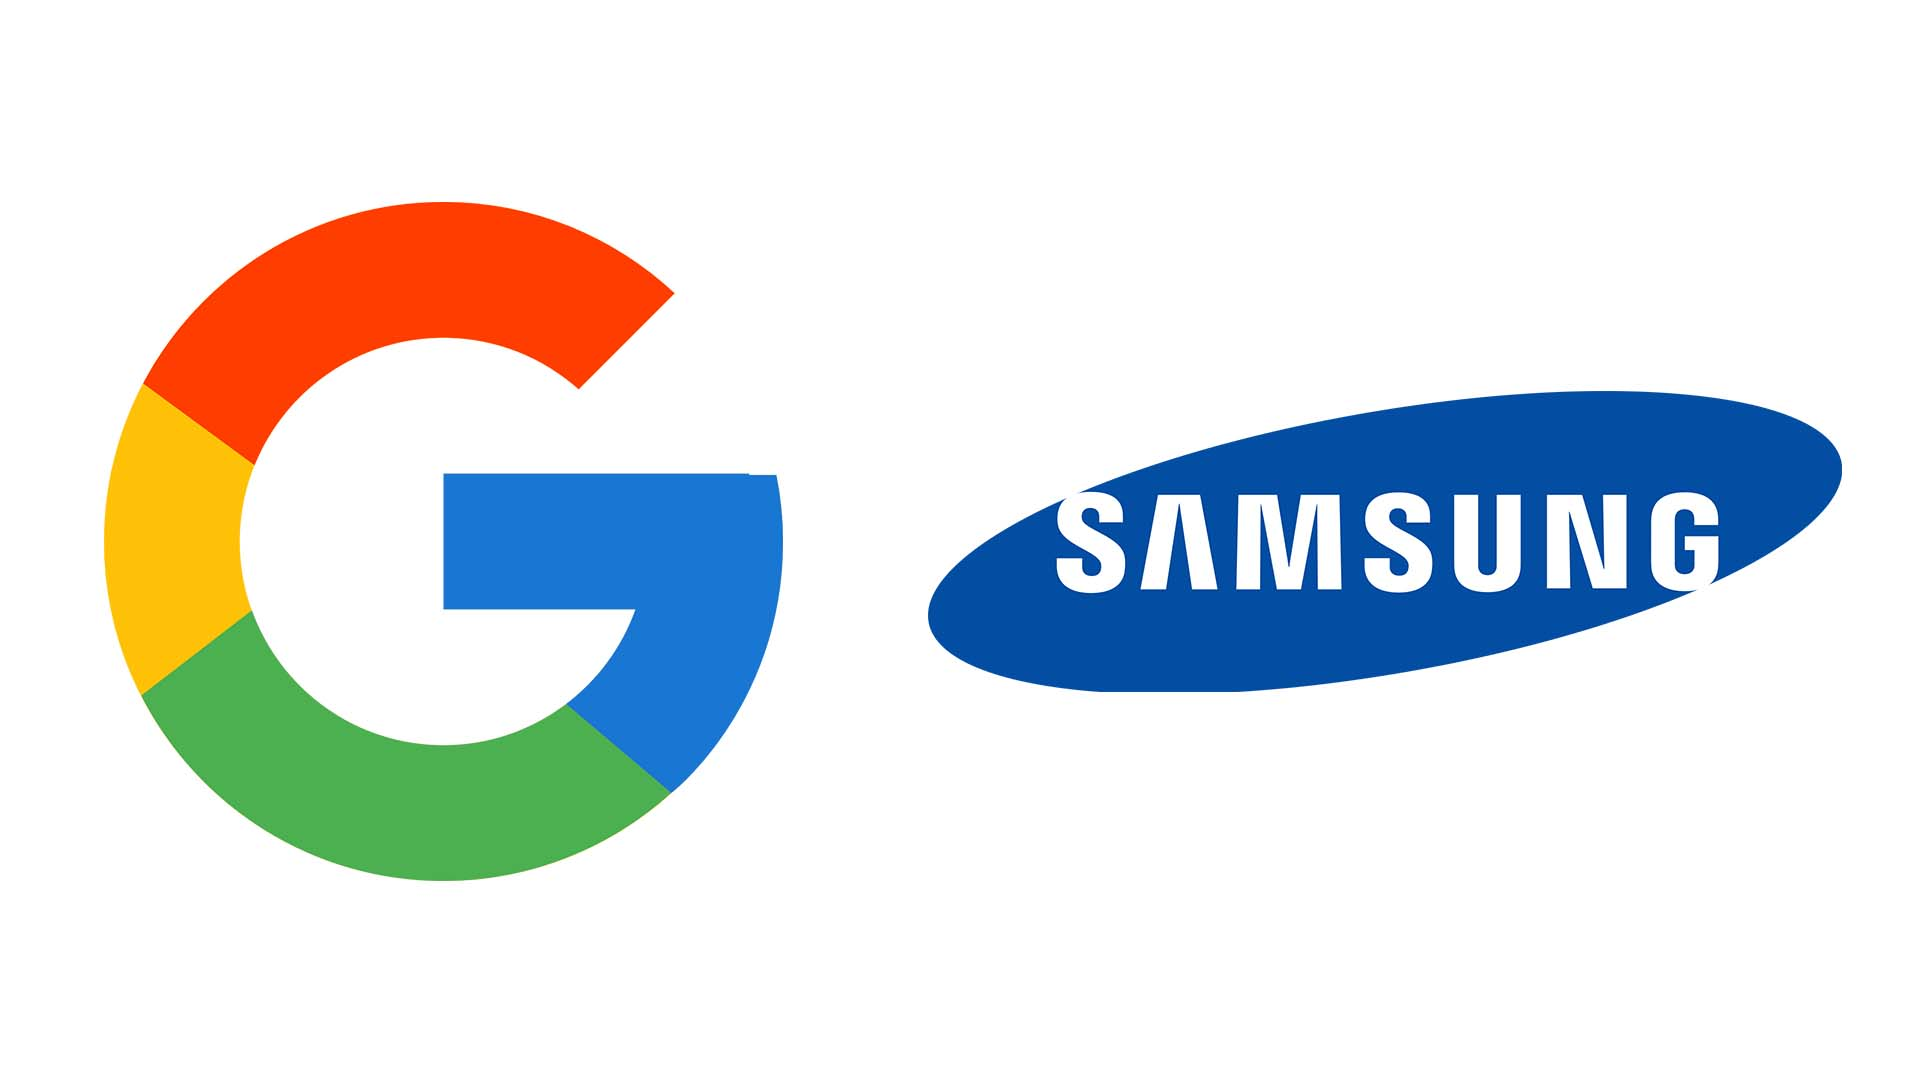 Google Paying Samsung Licensing Fees That Could up to $3.5 Billion ...